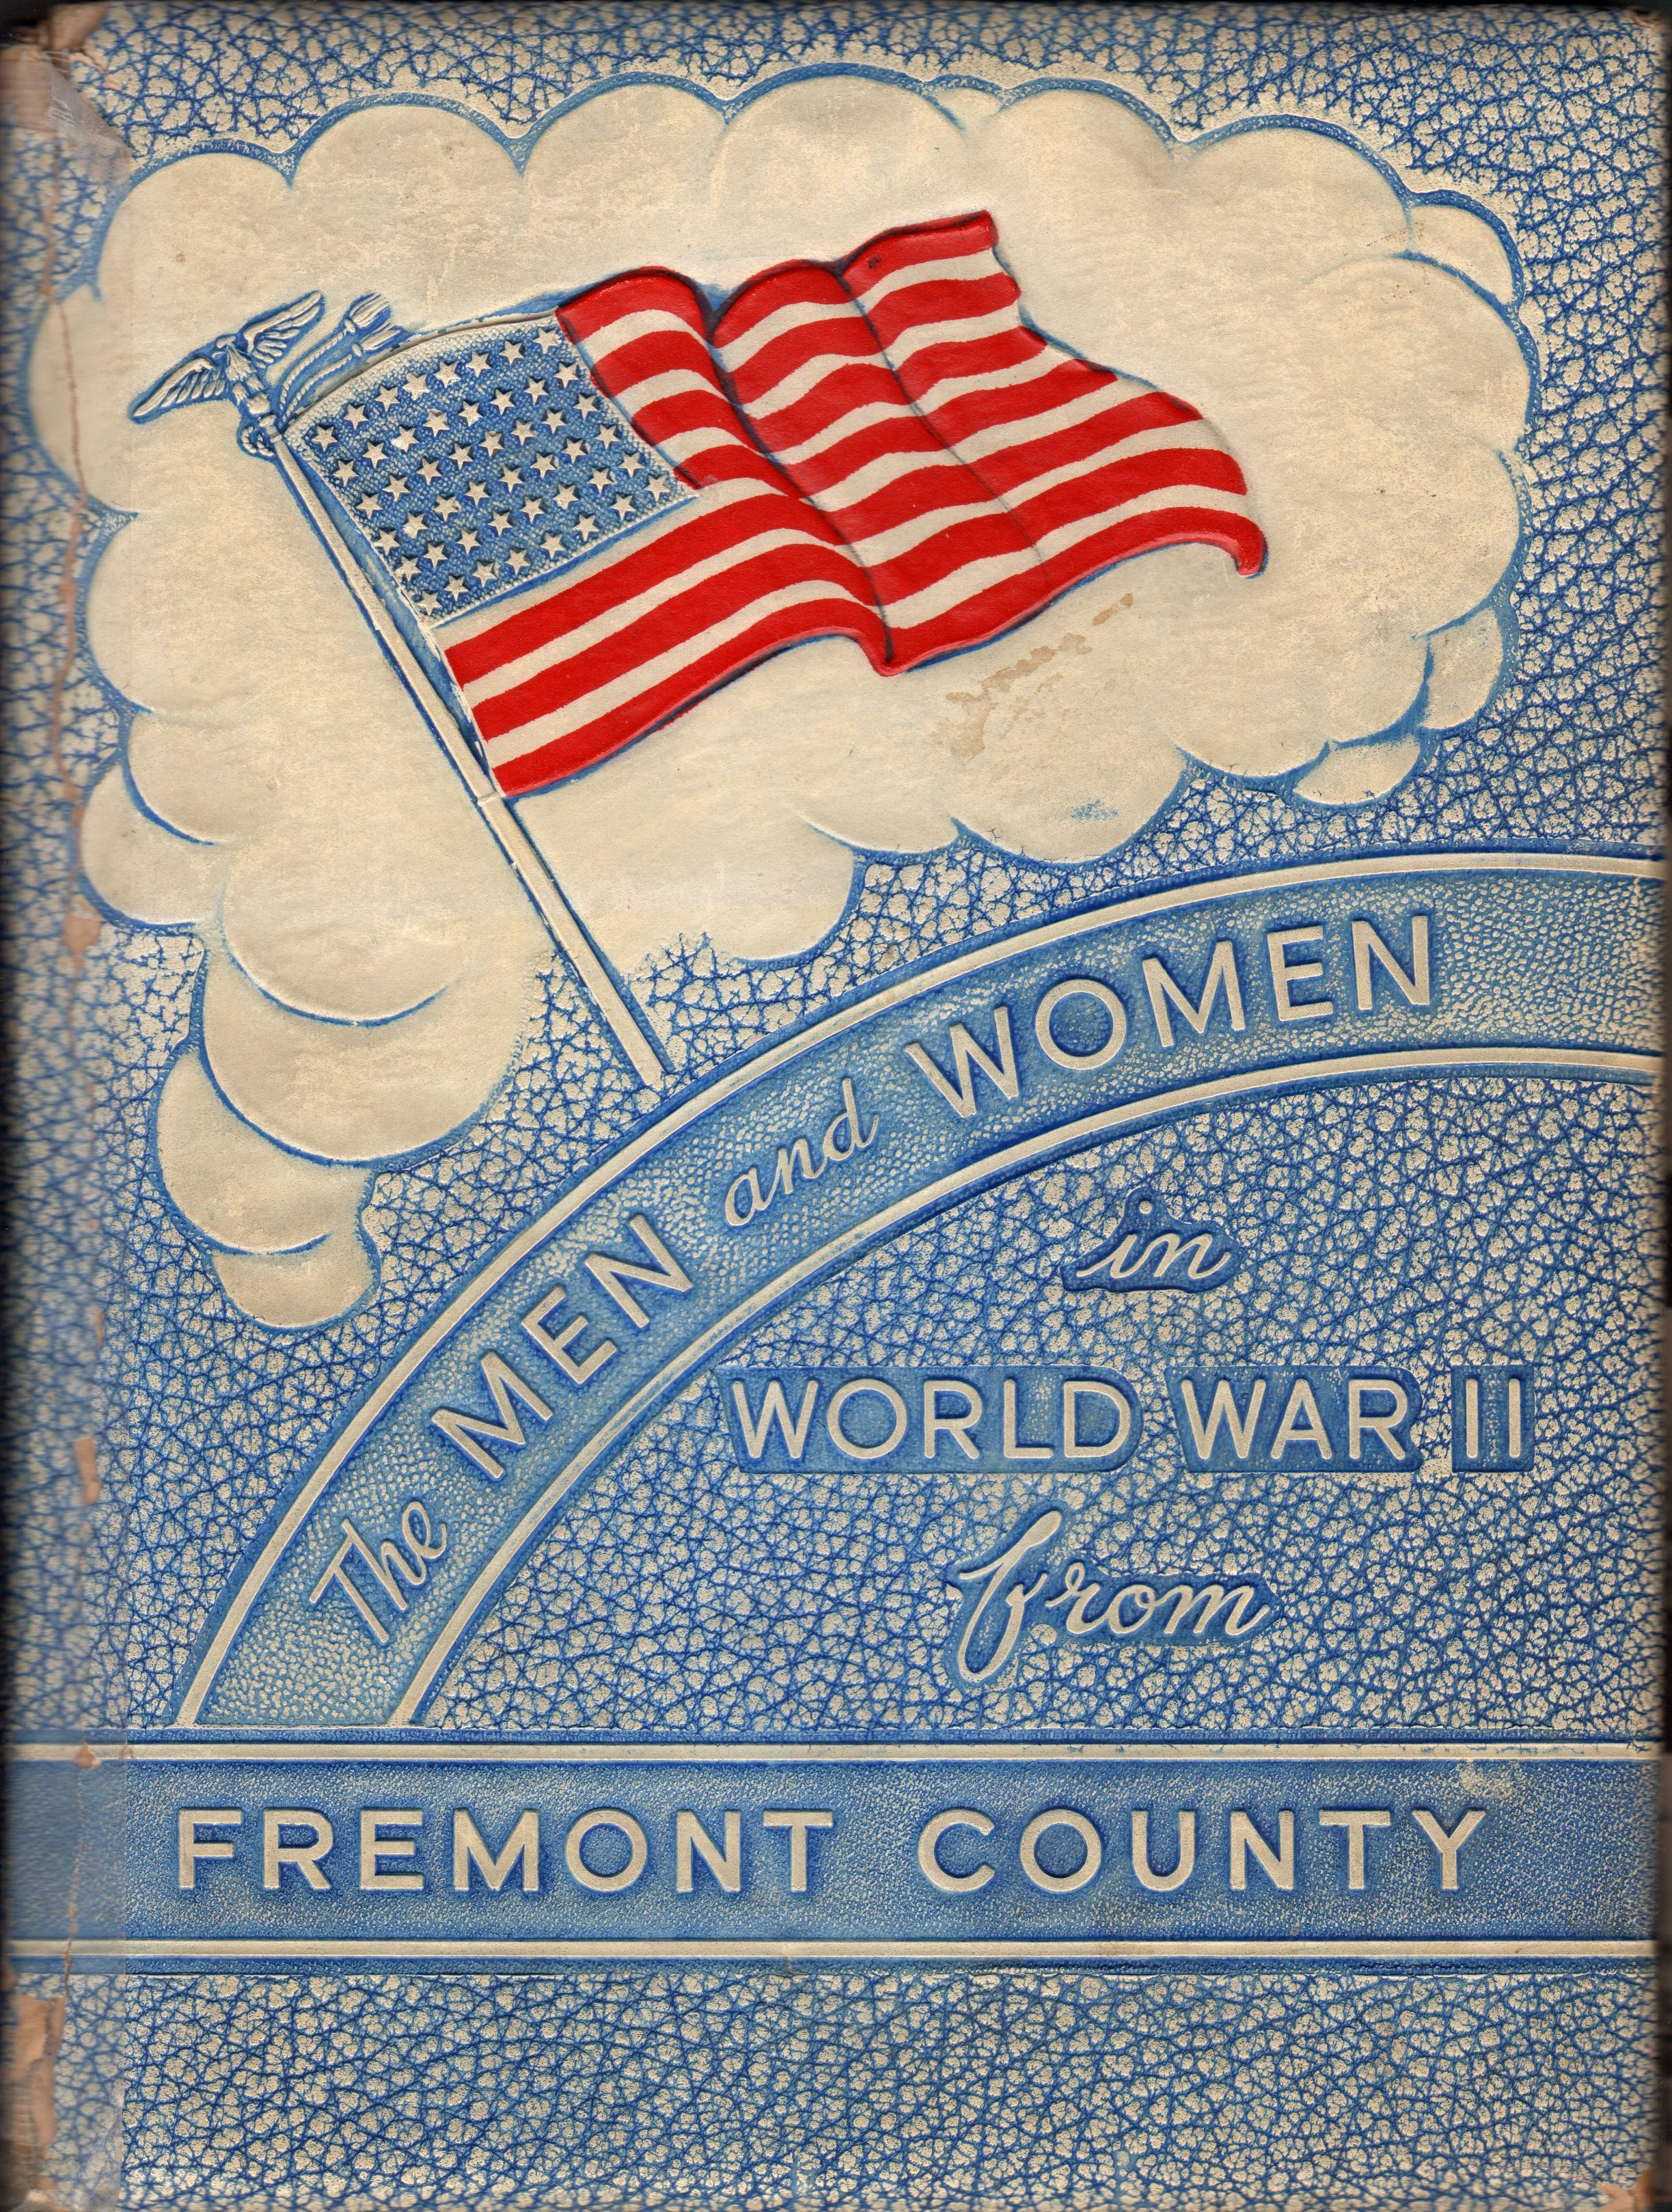 Men and Women in the Armed Force from Fremont County Colorado in World War Two - 1946 WW2 WWII 2  !! 11 II